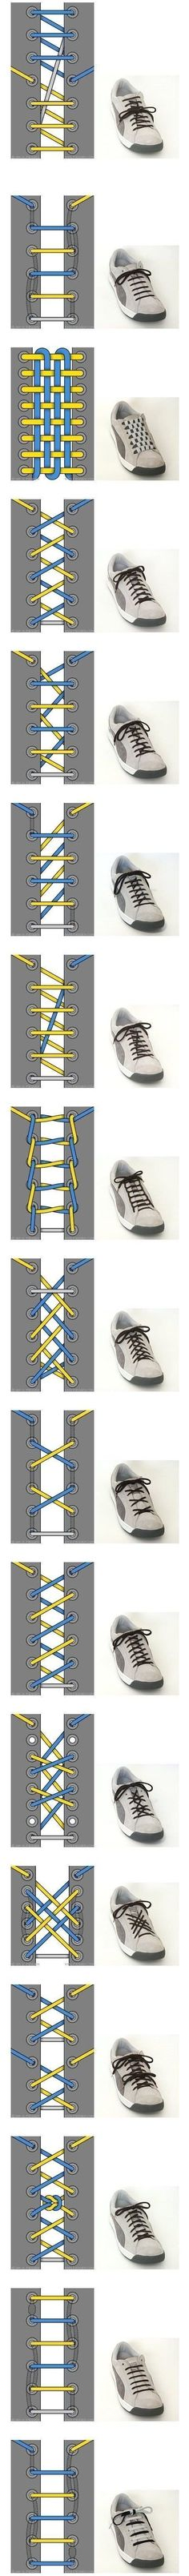 different ways to tie a shoelace